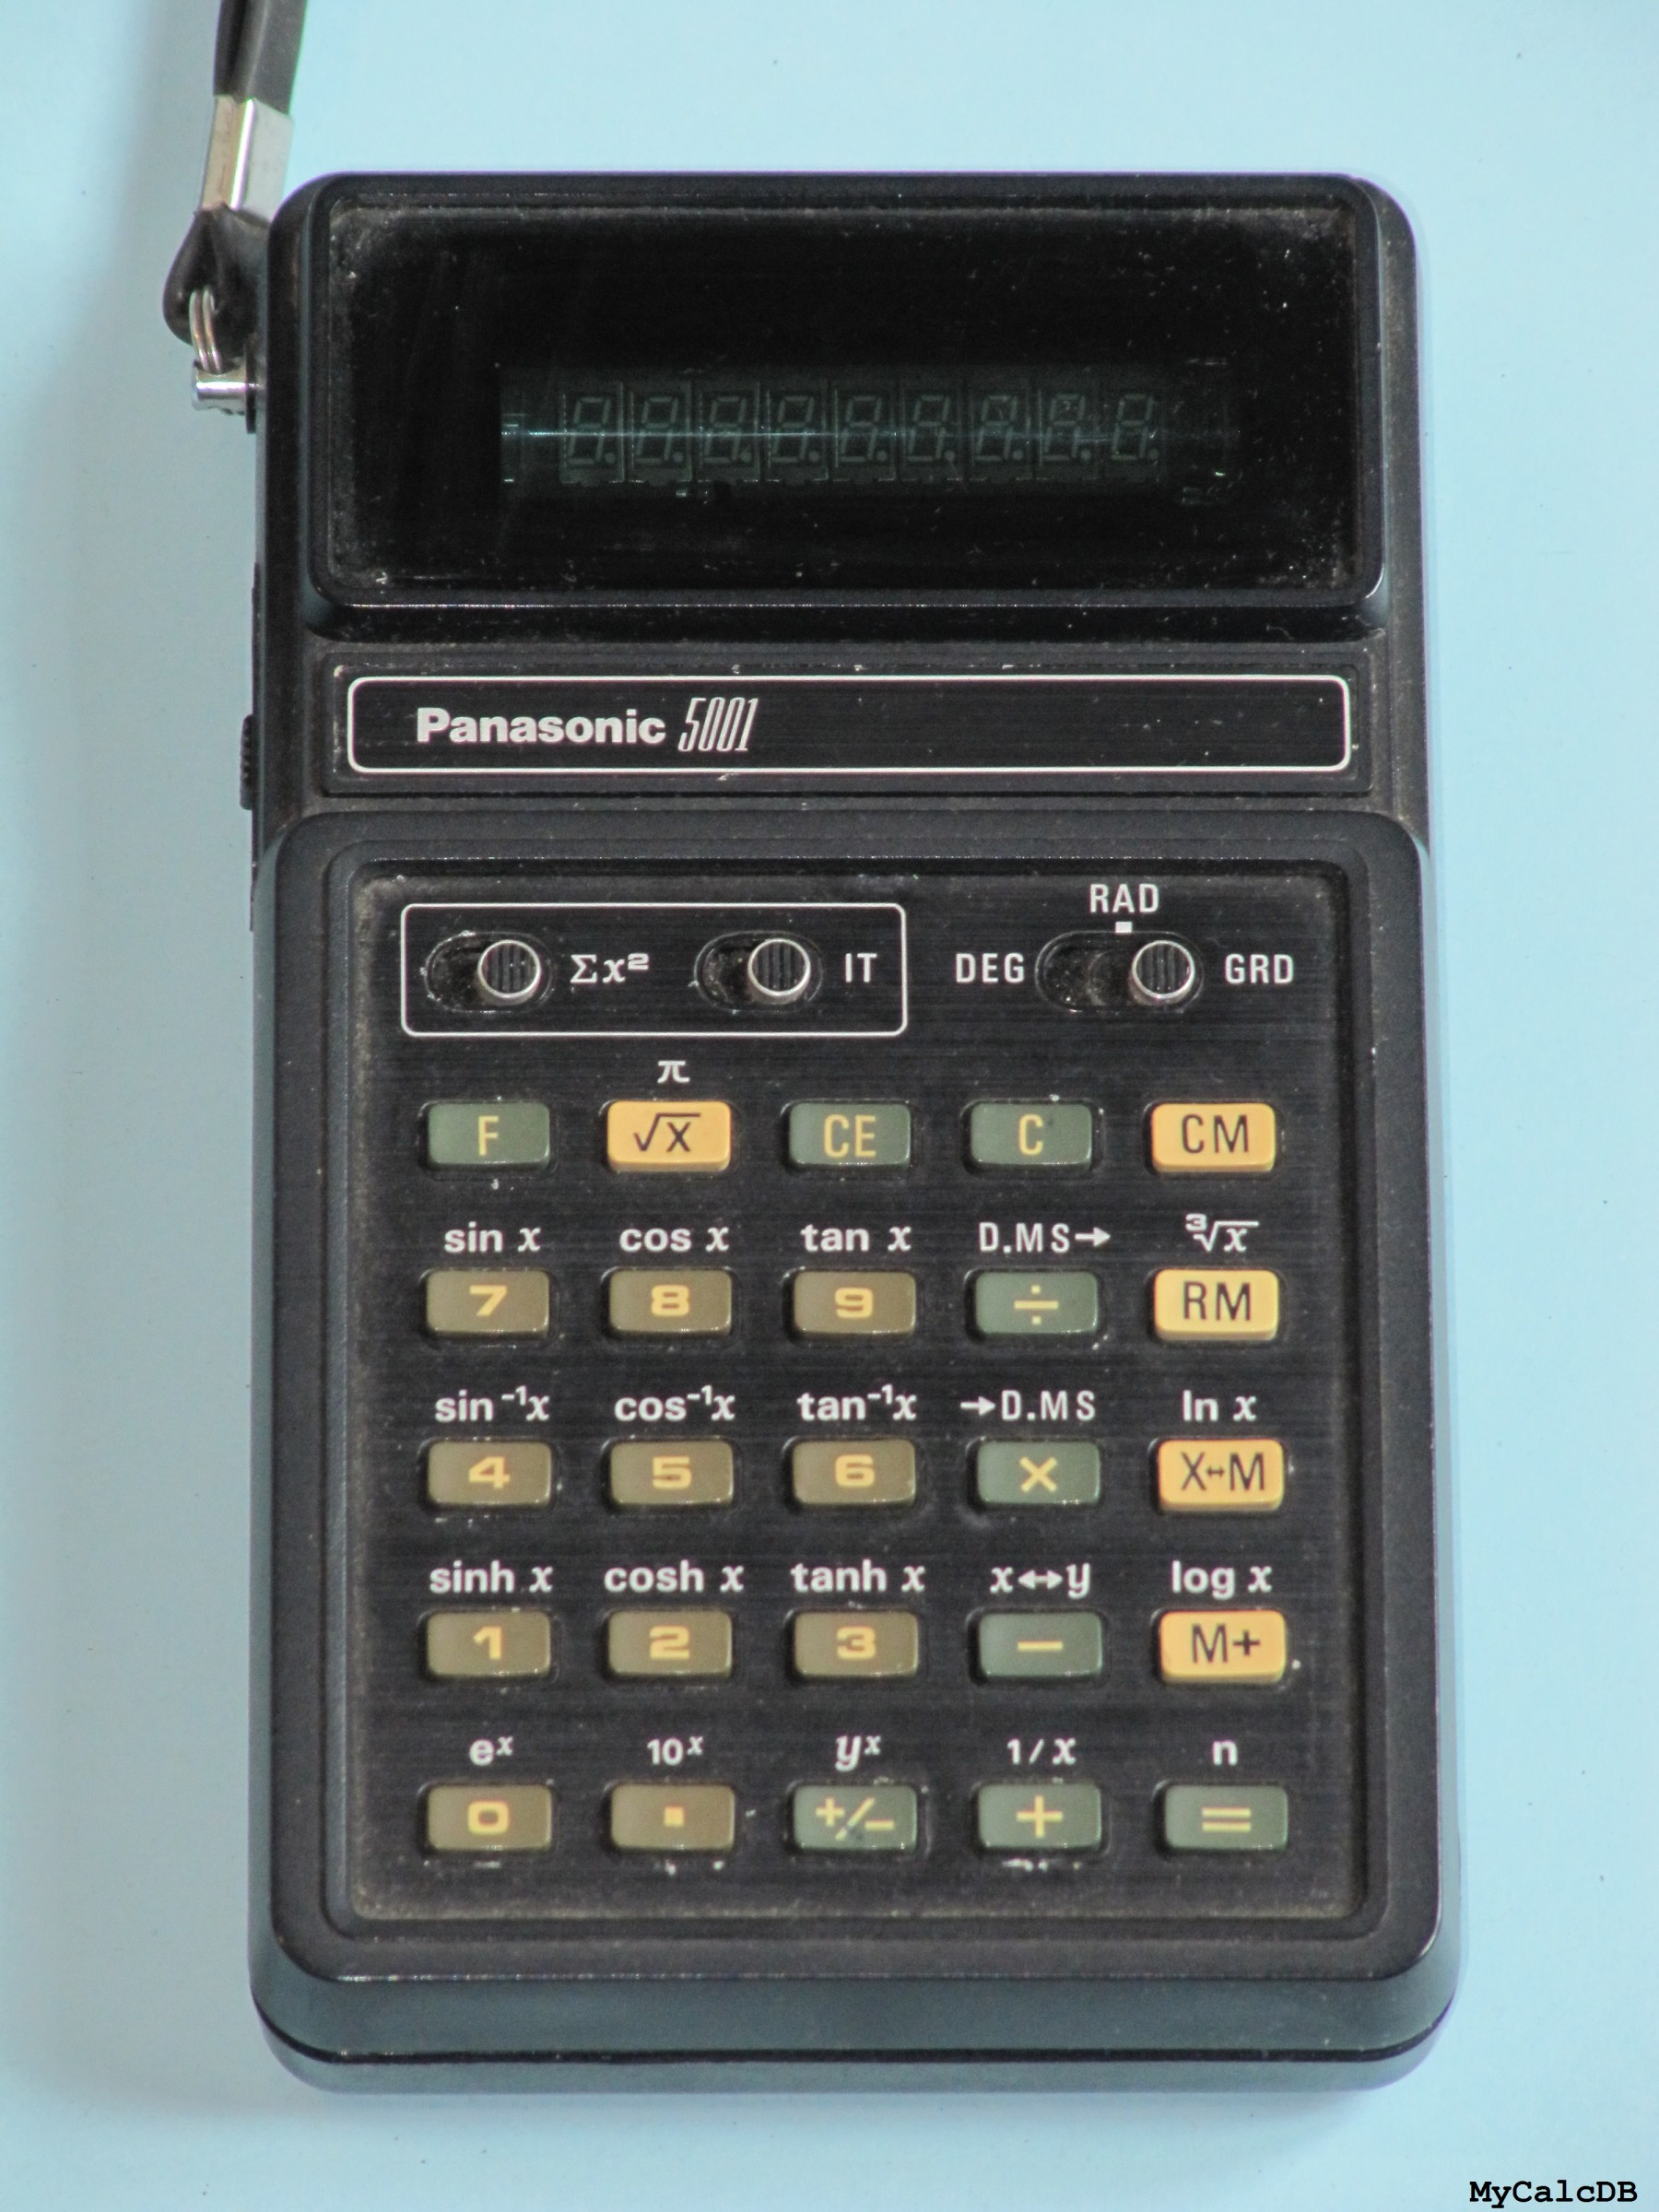 Panasonic 5001 or Panac S-1